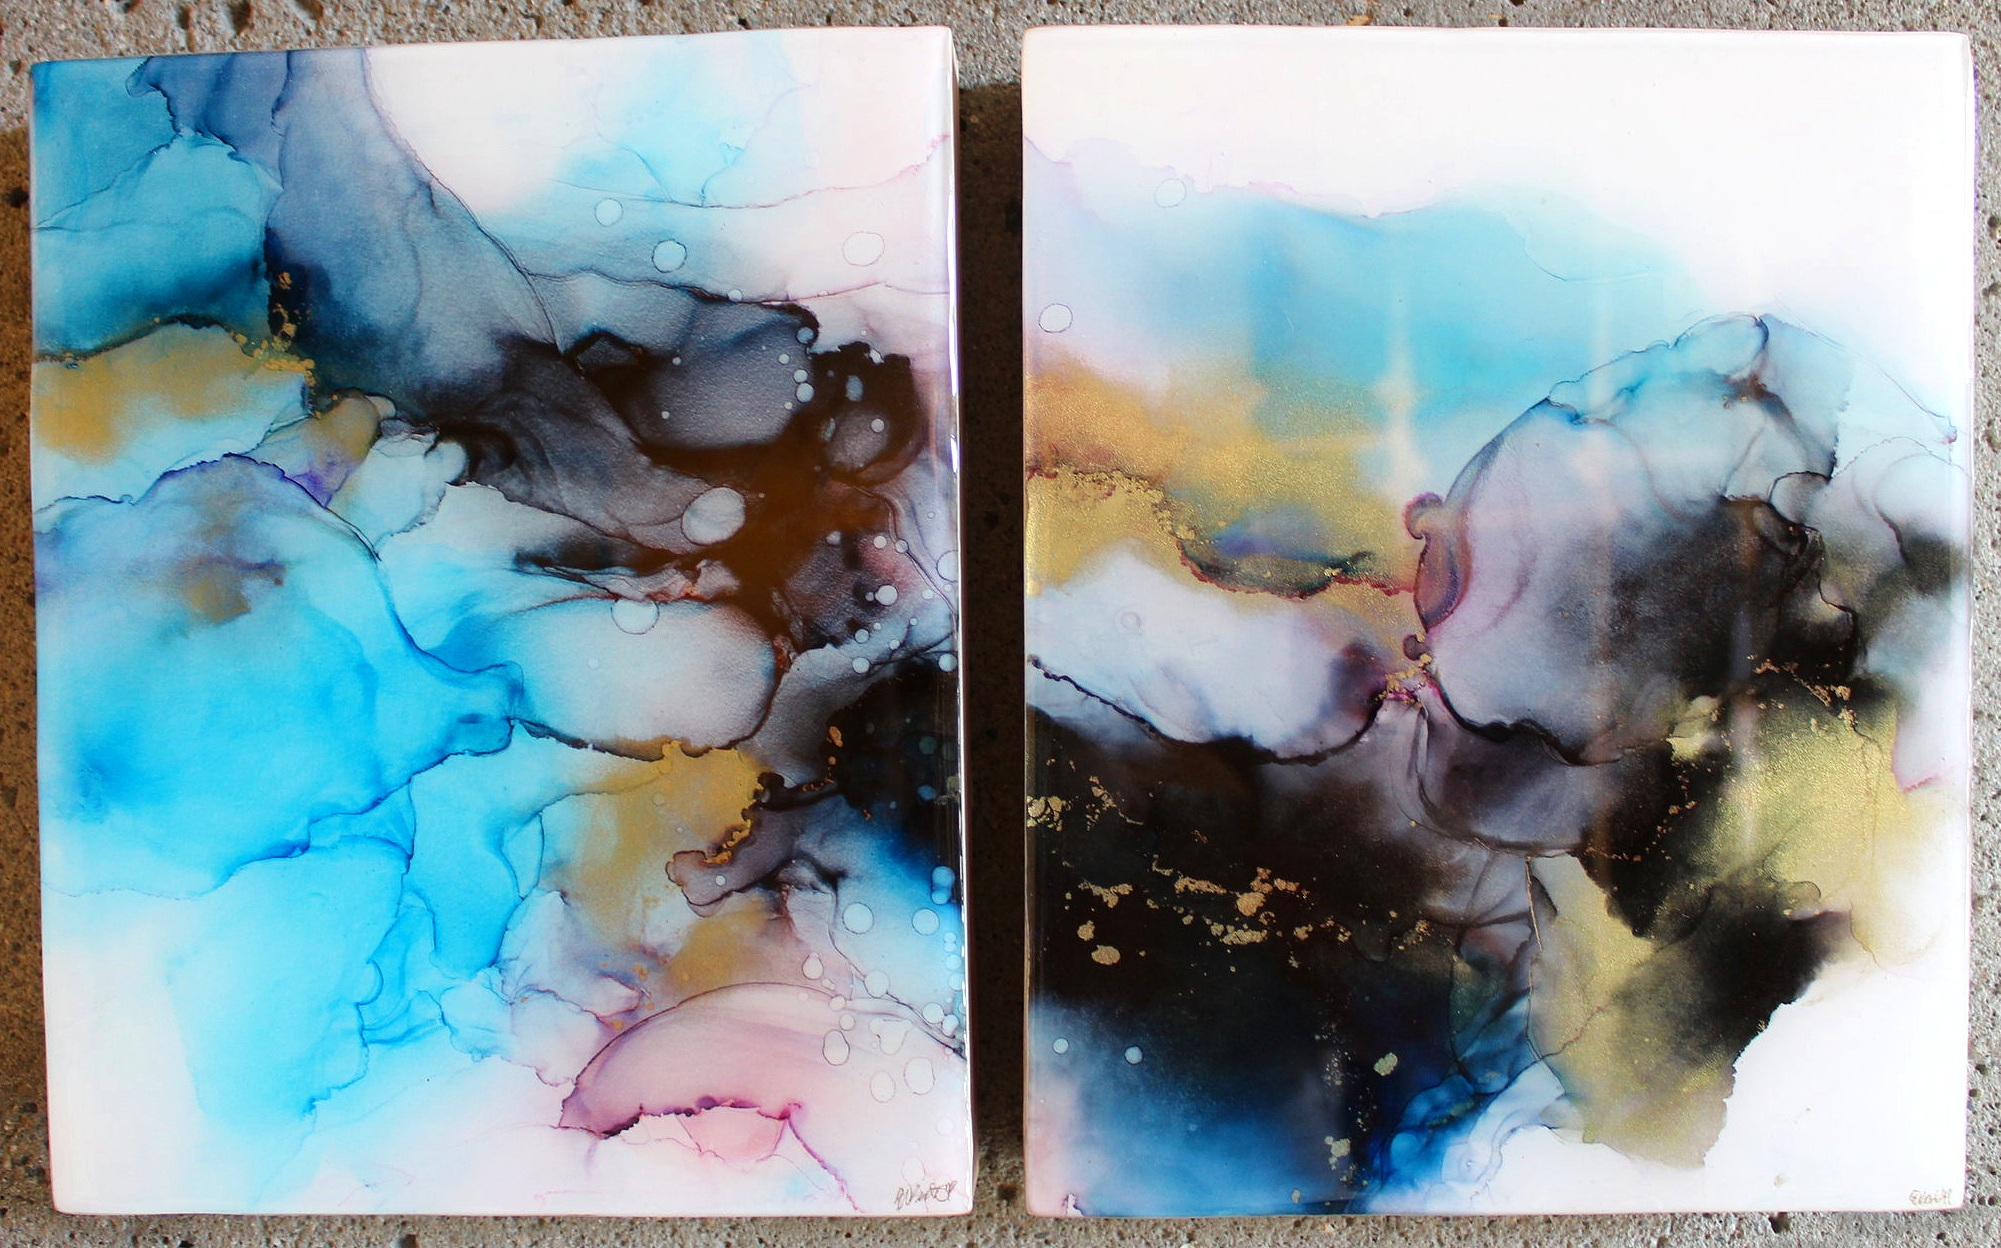 "Elizabeth Bate - Negative NebulaMy name is Liz and I am an alcohol ink artist here in Tacoma, WA. I discovered alcohol ink art several months back when I began to dabble in fluid art. I love how fluid, timeless and freeing inks can be. There are a variety of techniques and endless possibilities using this medium and you are not tied down to just one substrate to use as a canvas for your art. No two pieces are the same and the color combinations are endless.This piece is titled Negative Nebula. Negative nebula is an alcohol ink diptych made by adhering two pieces of synthetic paper called Yupo to 1 ½ cradled birch wood. I then used different drying techniques with alcohol ink and isopropyl to create my piece. After it has dried and been sealed, I then pour resin on top to give it a protective hard and shiny layer and really makes the colors pop. When you see pictures of nebulas you see them against the black vastness of the universe. My ""Negative Nebula"" is the response to that darkness in our galaxy. Different colors are immersing together against a white background to be a yin to the yang of our solar system."